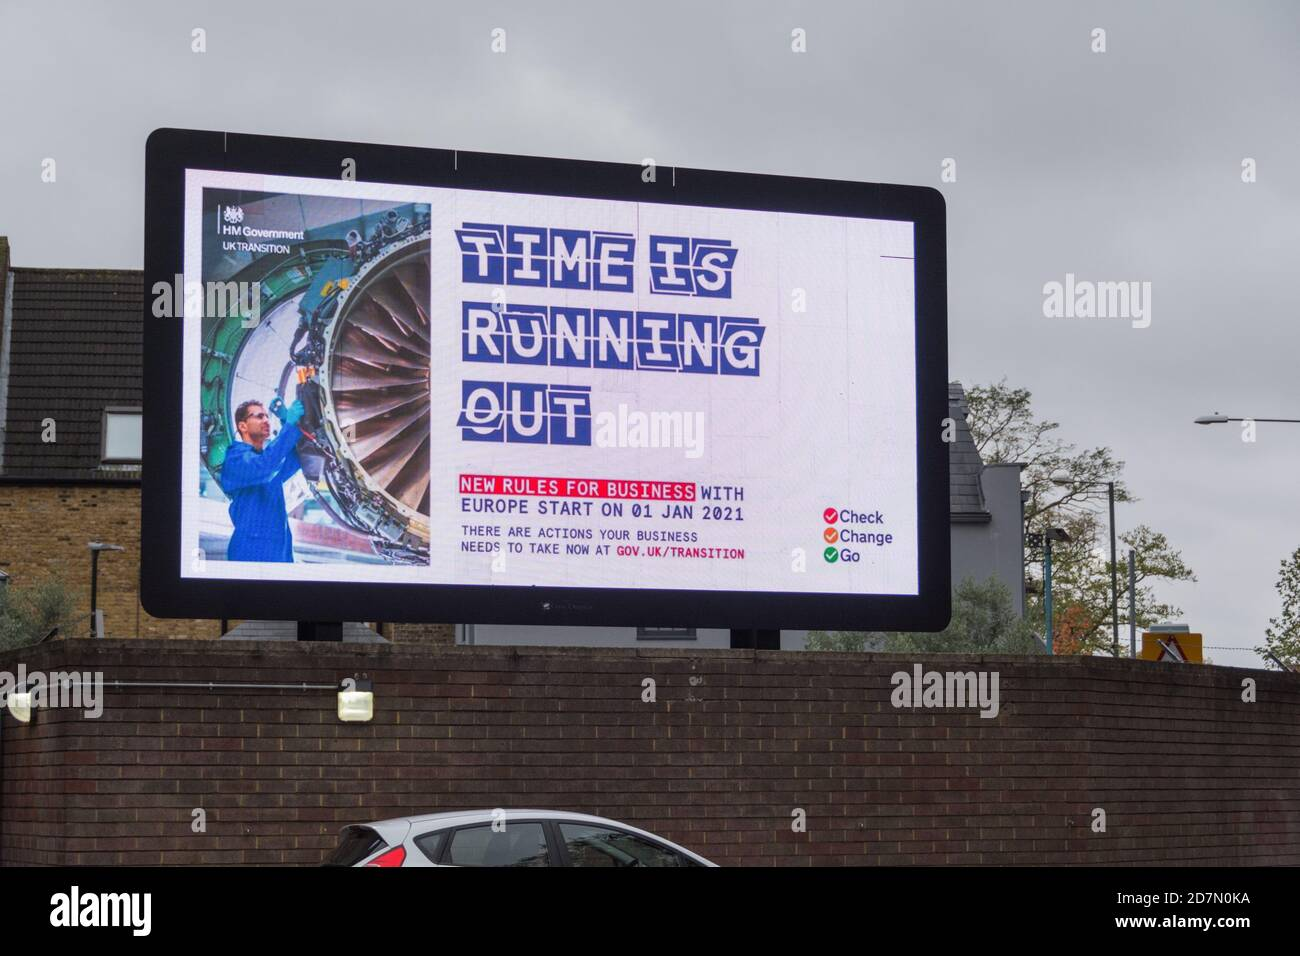 London, England, UK. 24 October 2020.  HM Government, Brexit - Time Is Running Out electronic billboard advert © Benjamin John Stock Photo